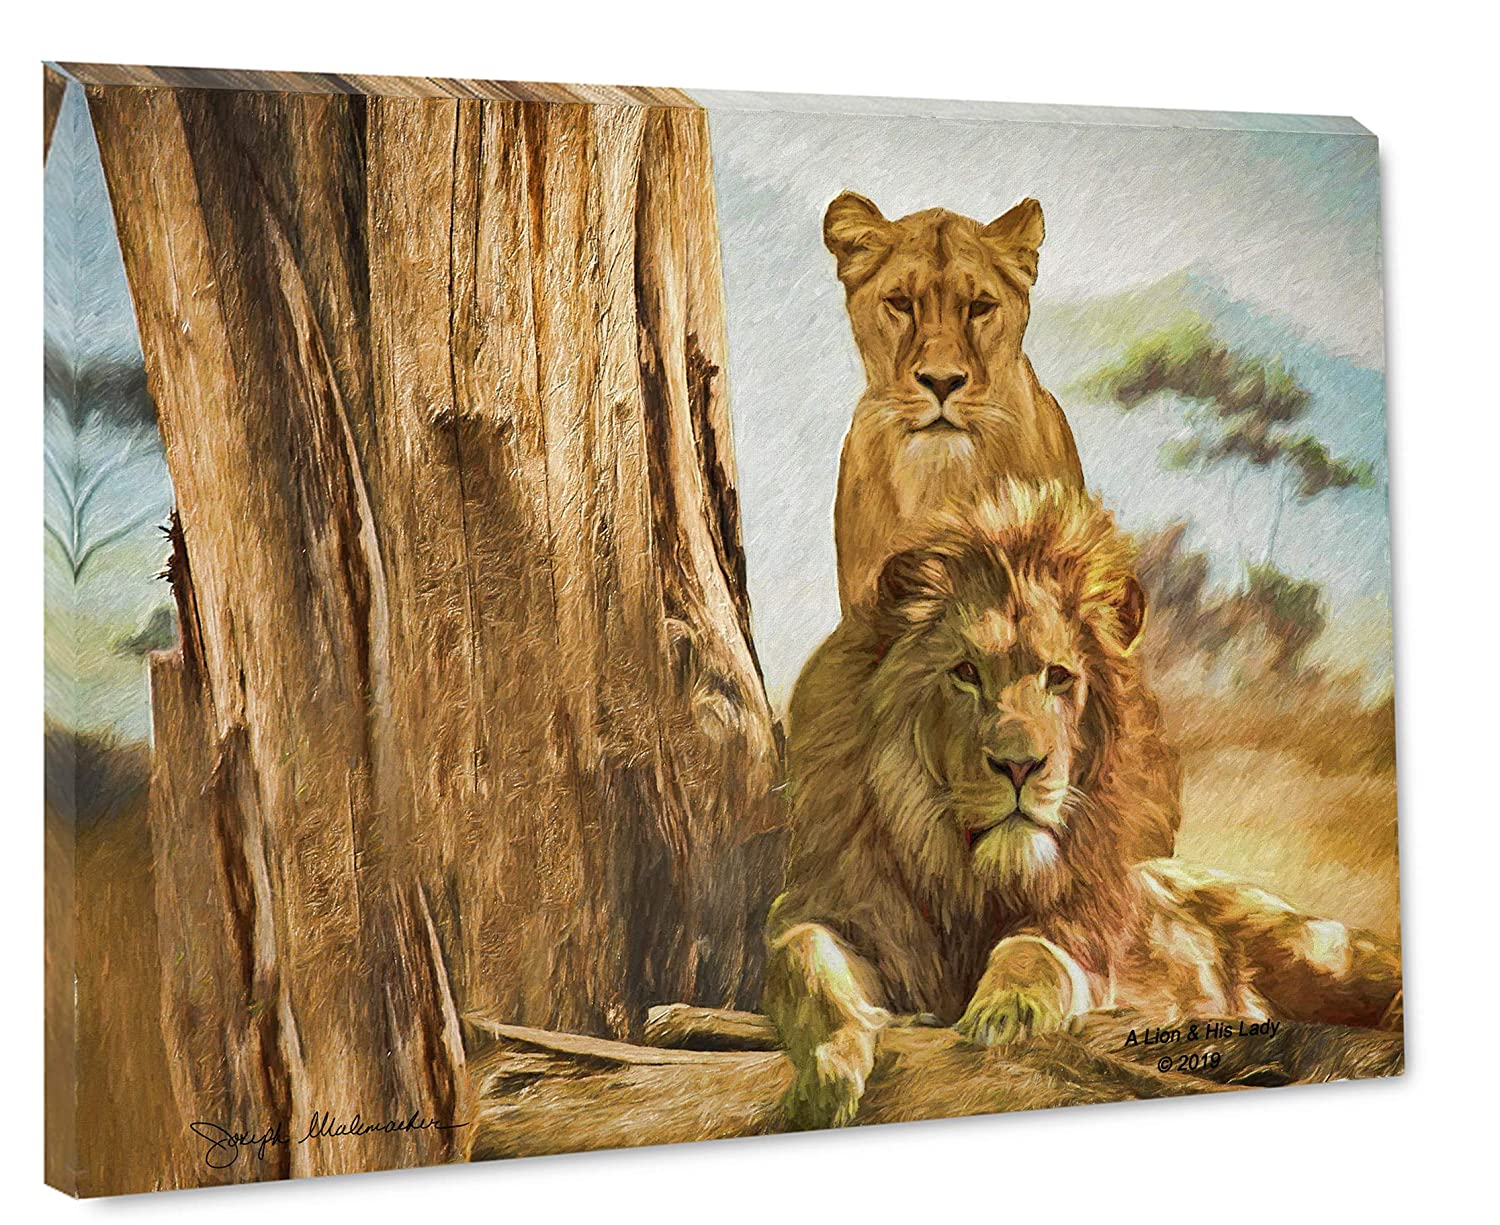 Abstract Art Lion Wildlife 1 PC Canvas Wall Picture Home Decor Poster Artwork